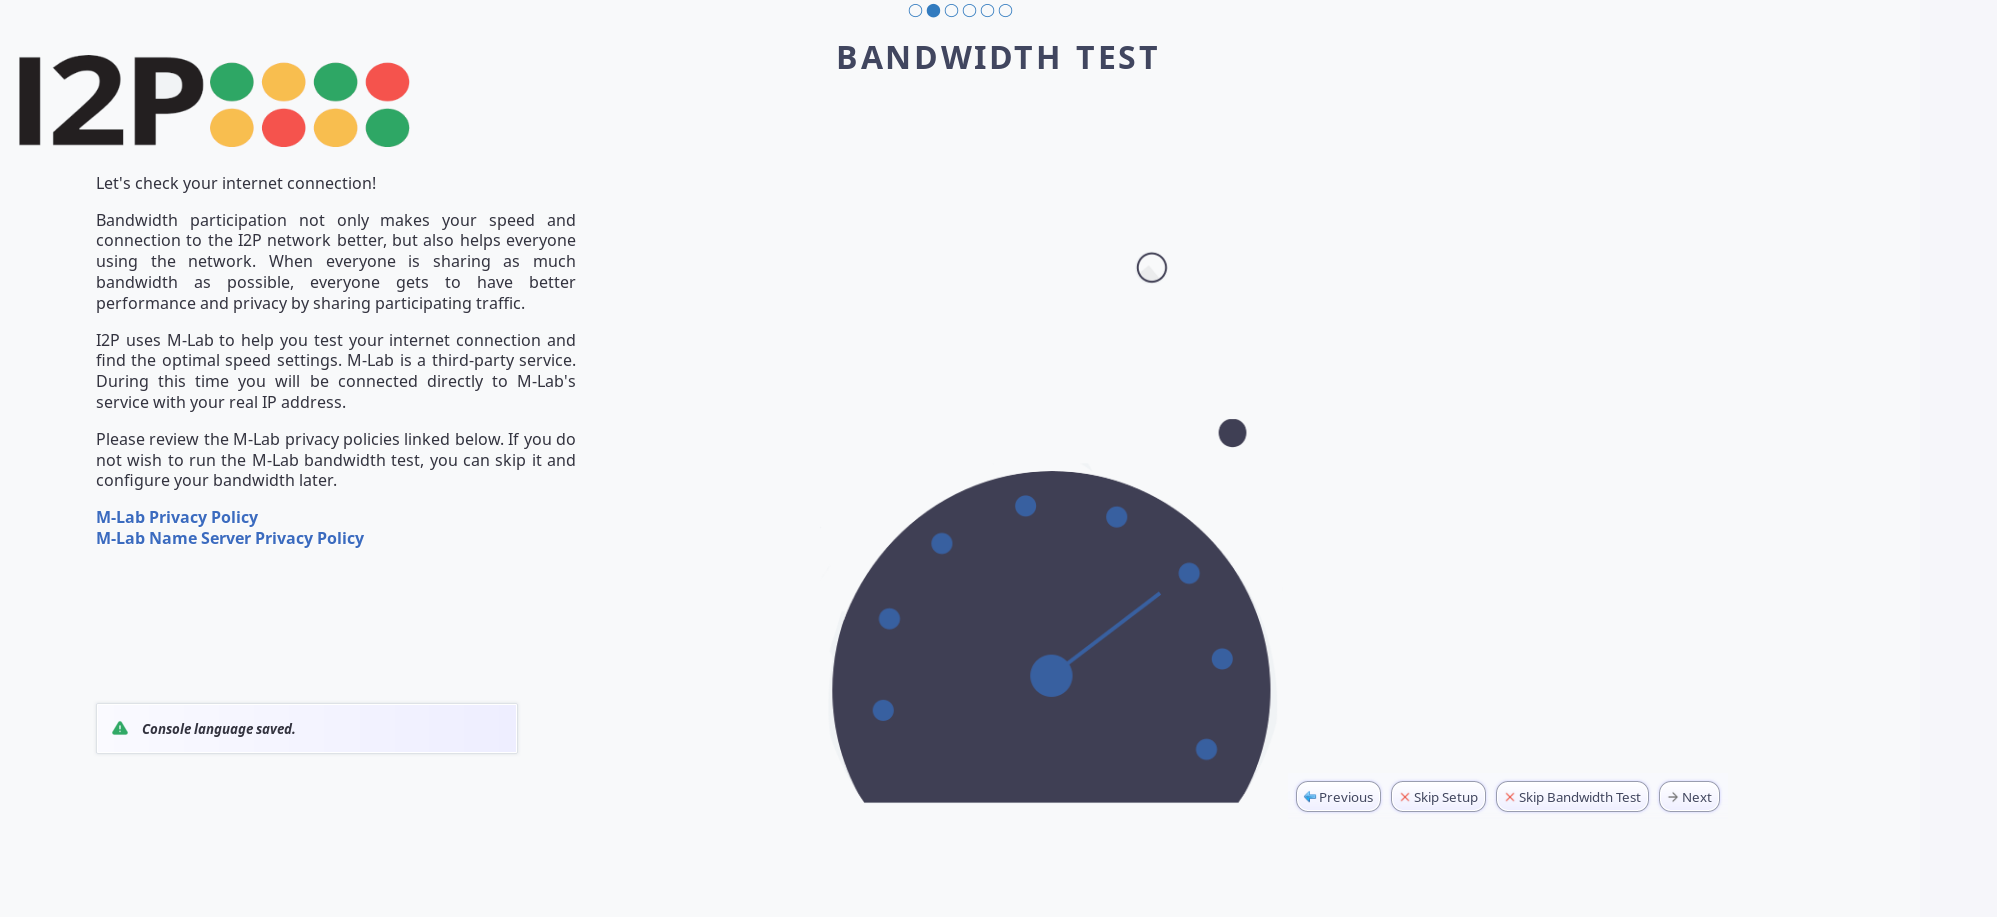 Let the participant know what the bandwidth test entails